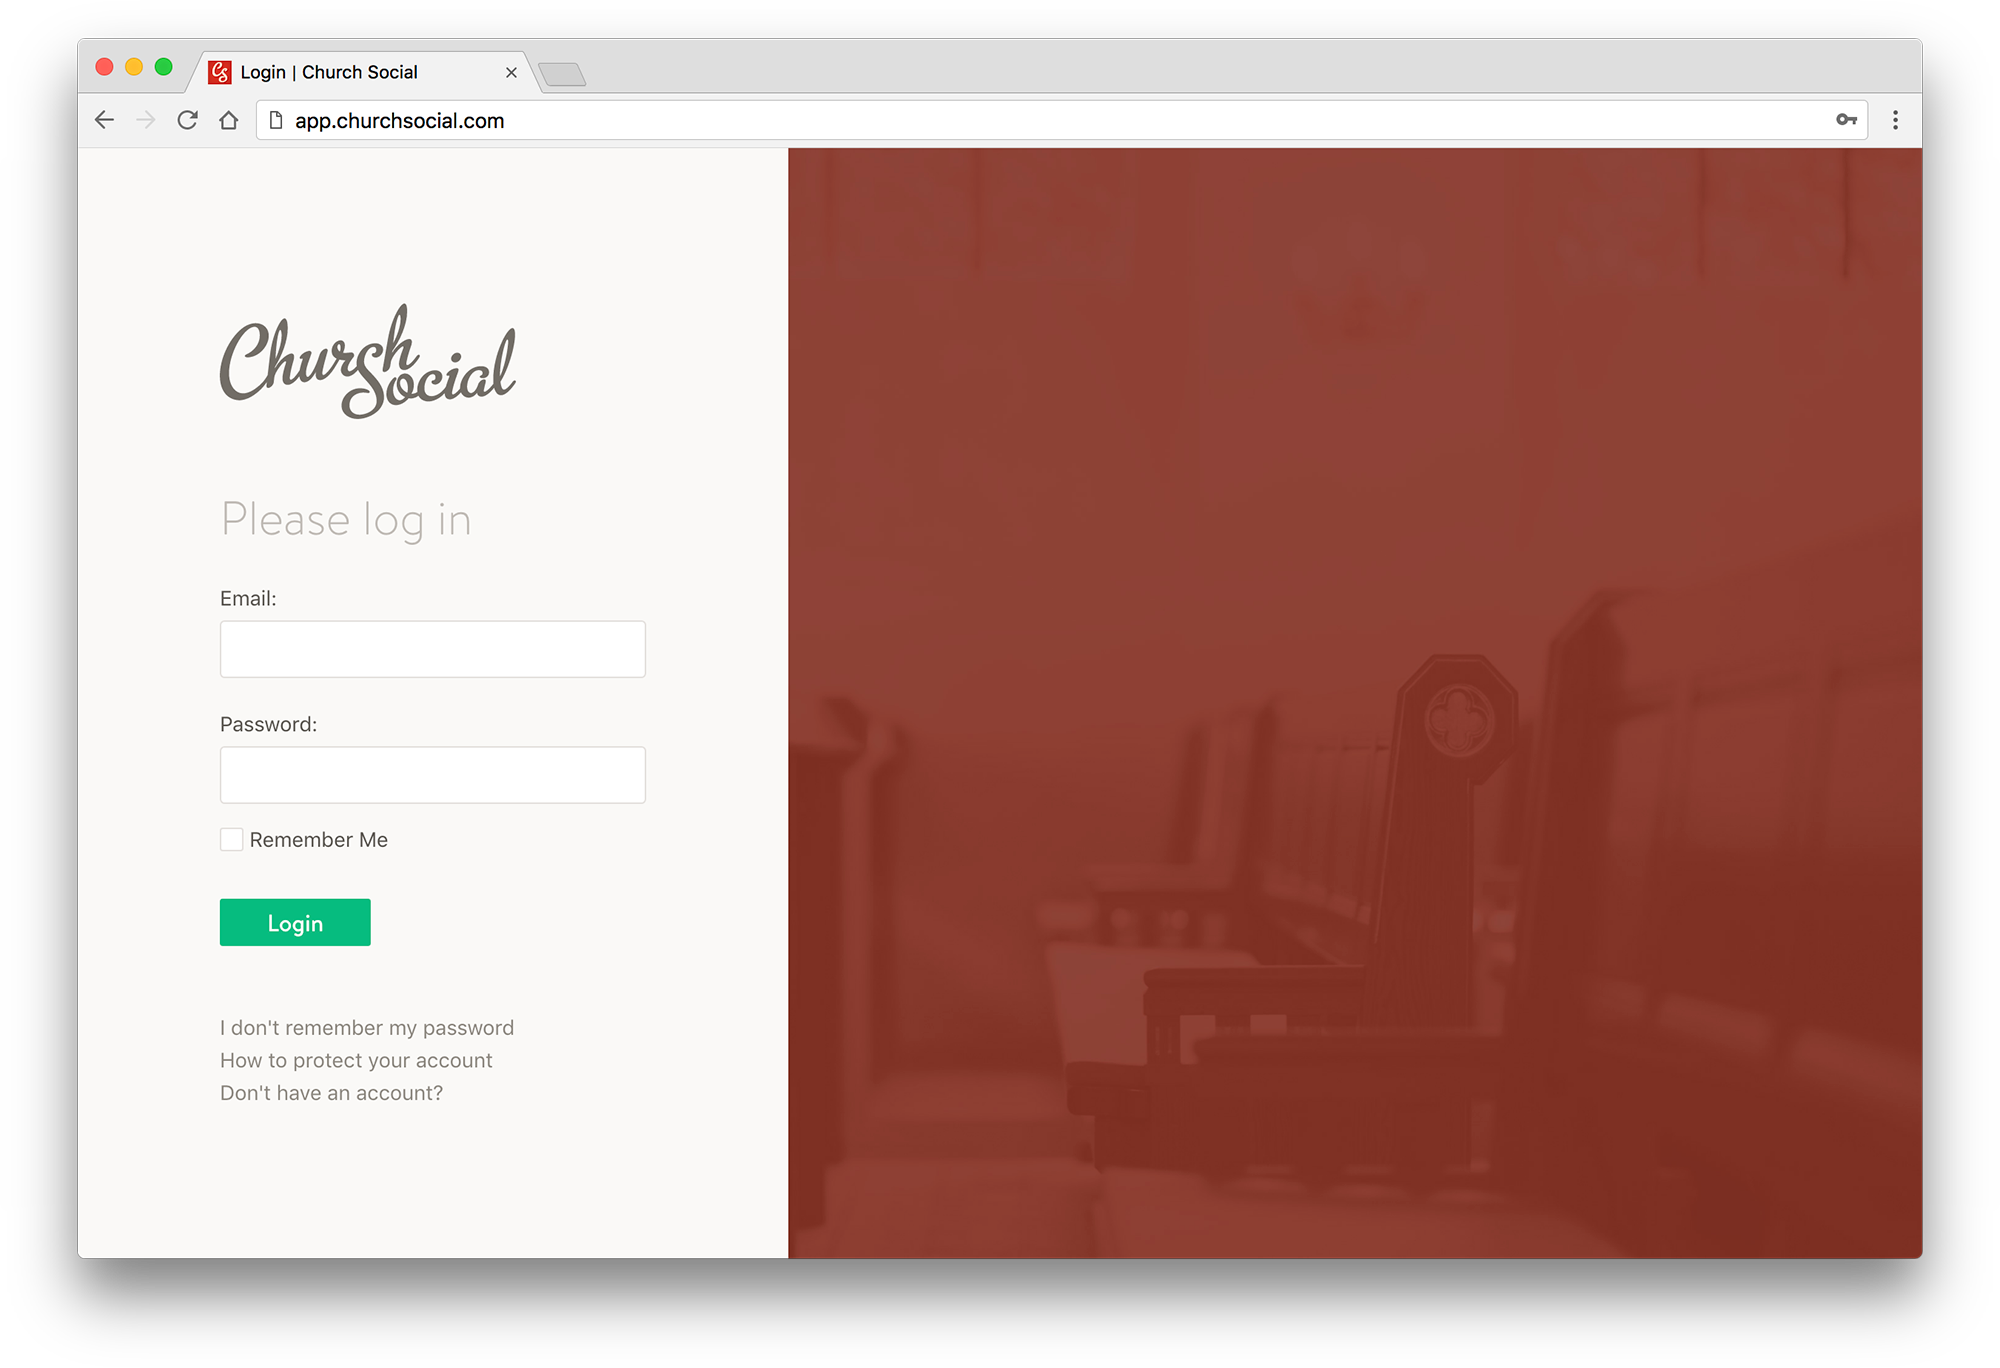 Screenshot of the redesigned Church Social login page